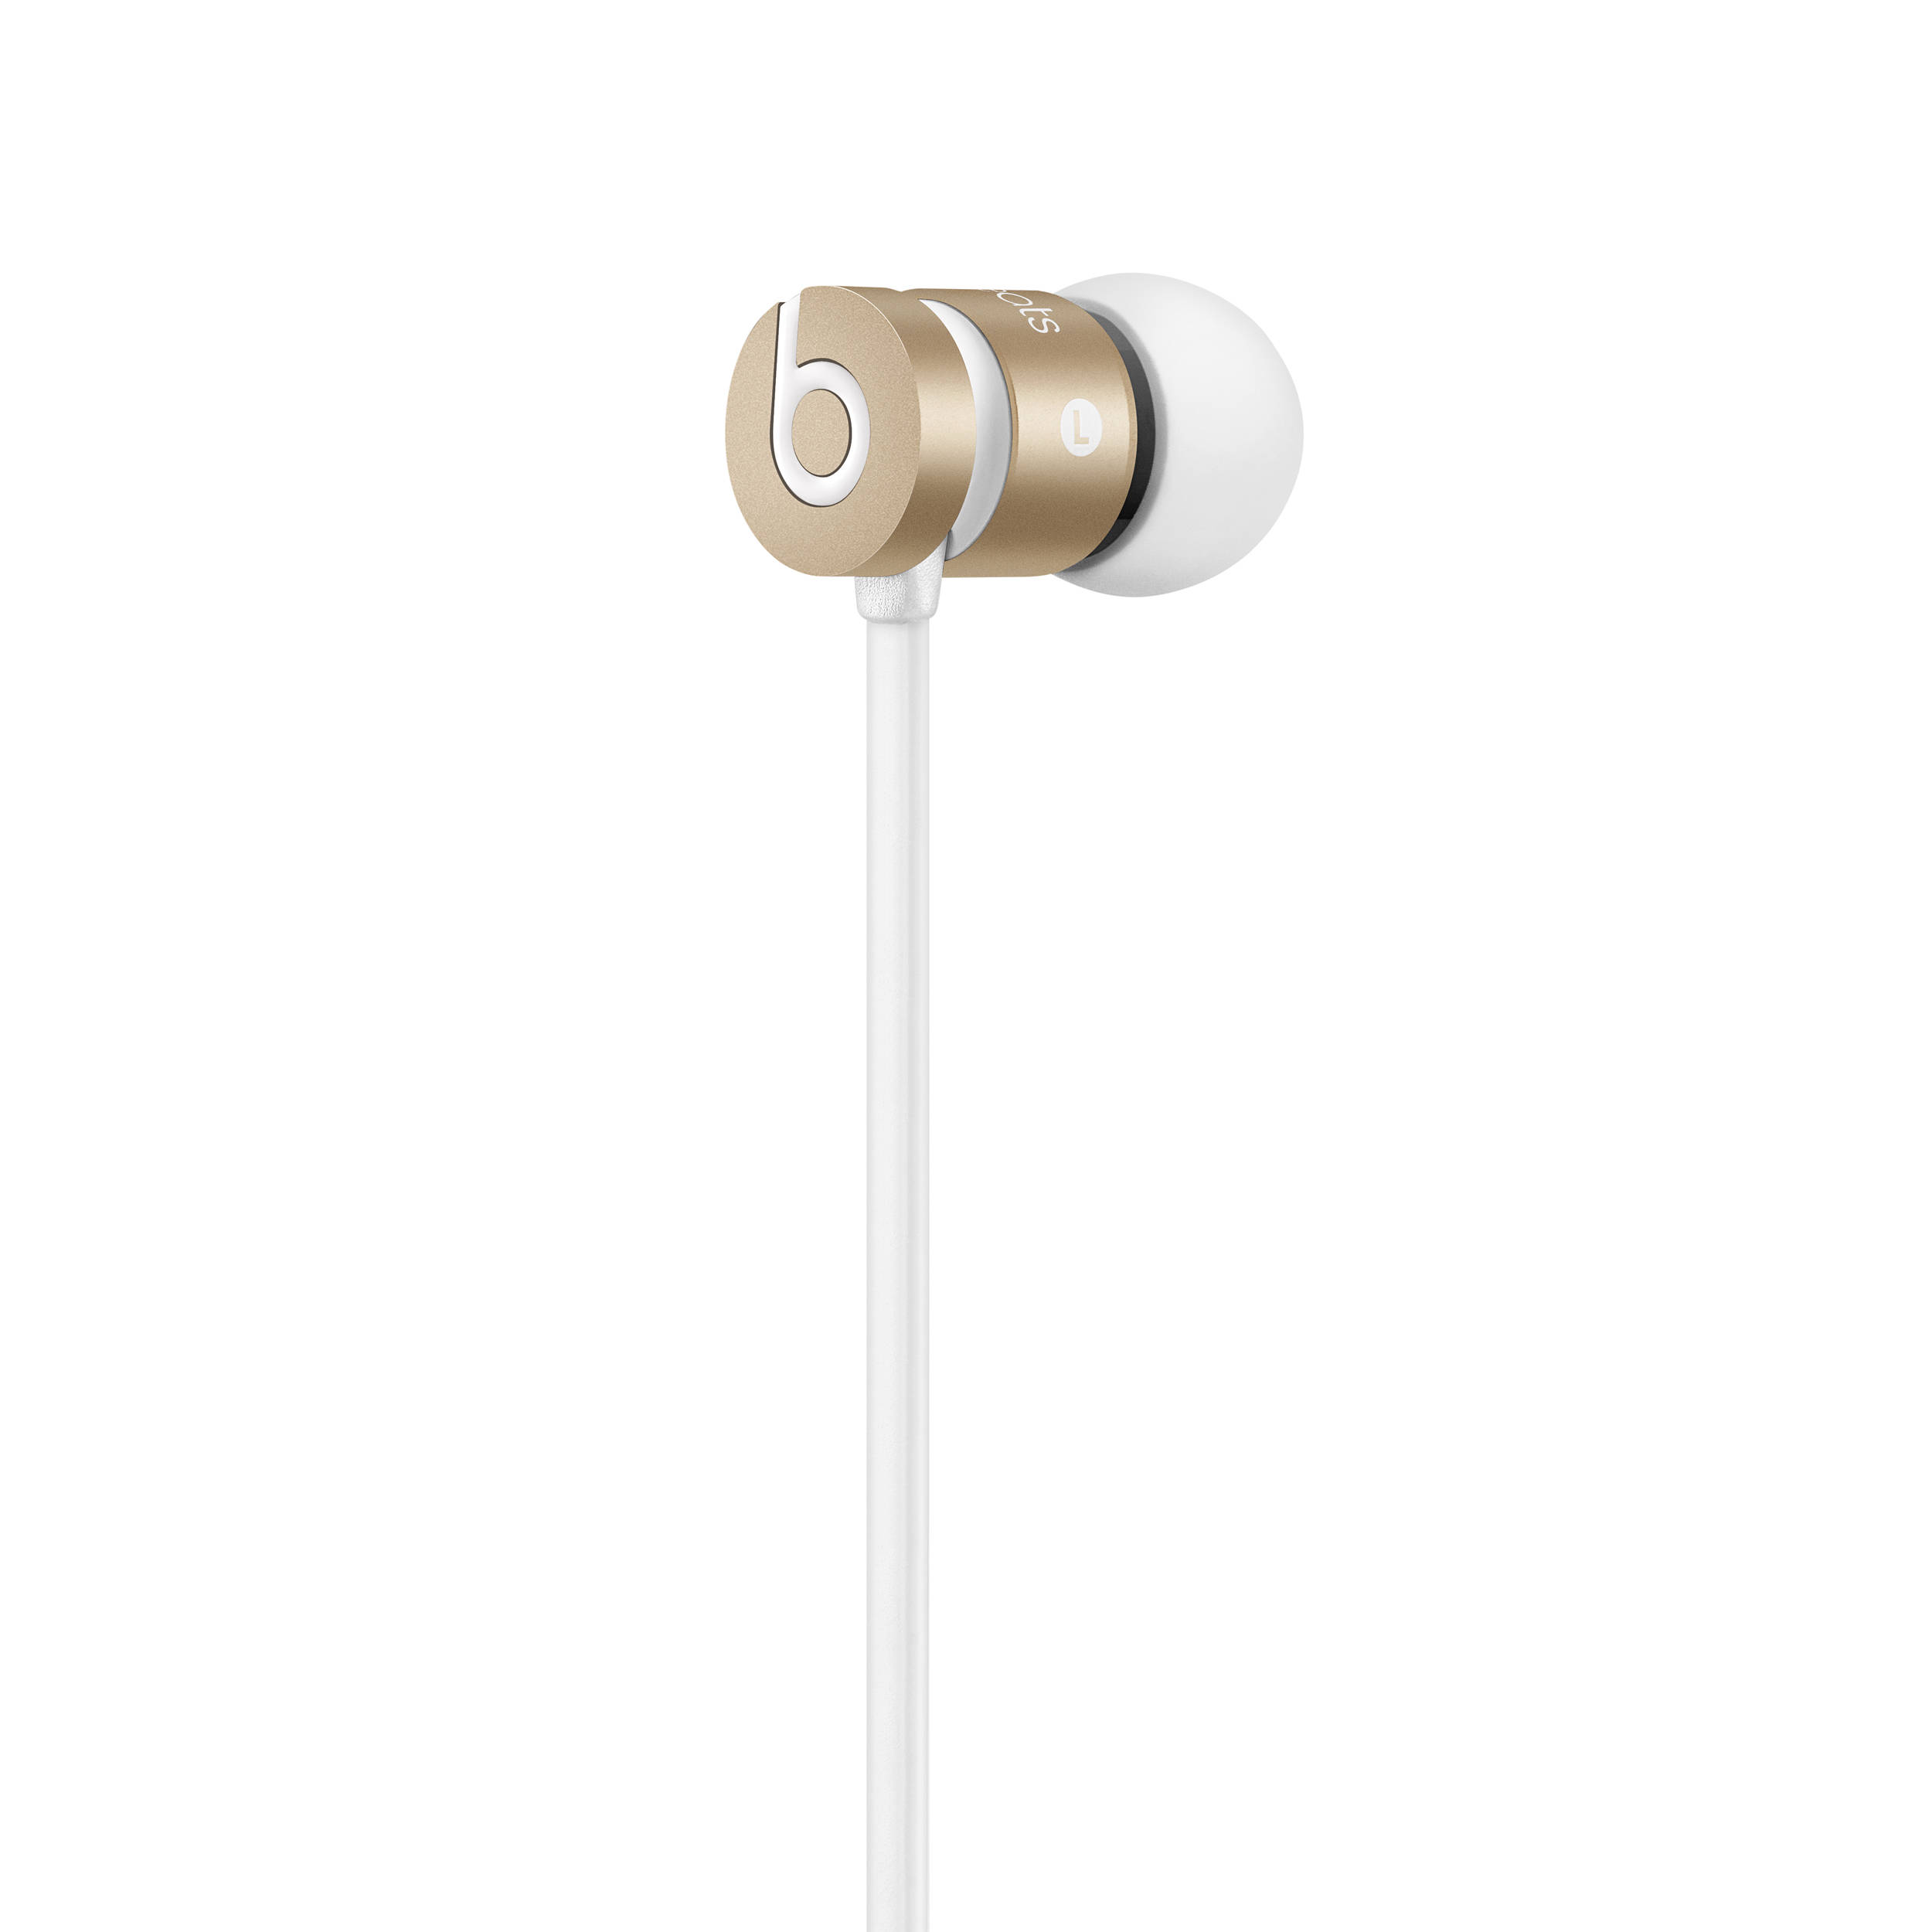 Used Beats by Dr. Dre urBeats2 In-Ear Headphones (Gold) a6e6ffc59d31